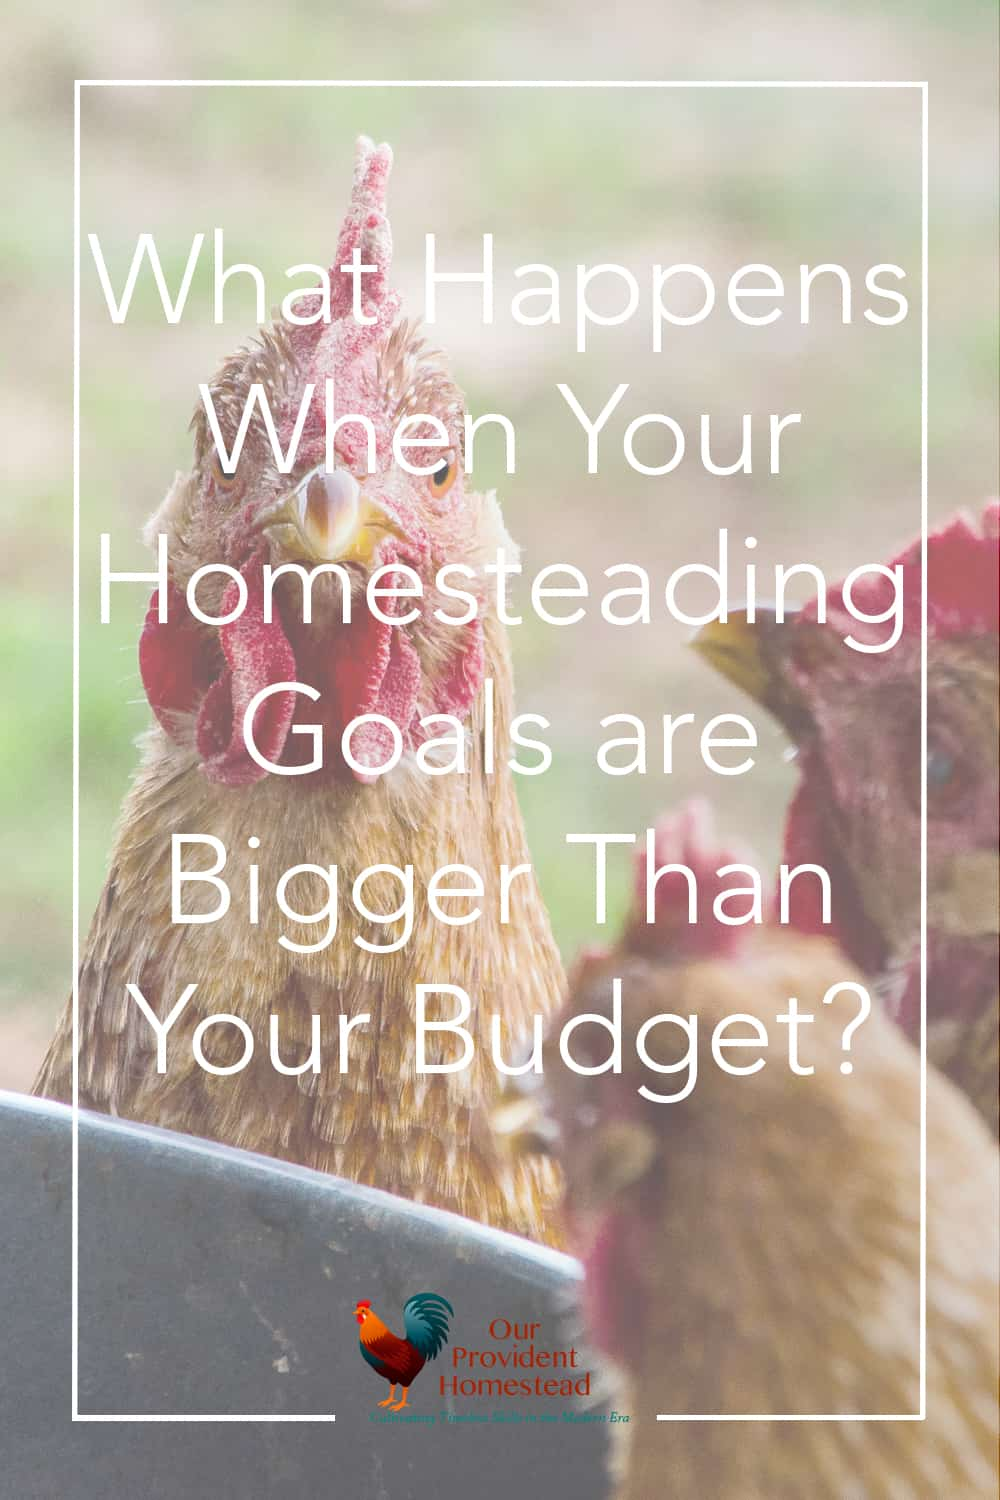 Do you have a homesteading budget? We discuss how to handle it when your homesteading goals are a lot bigger than your budget. Homesteading Budget | Homesteading Goals | Goals vs. Budget